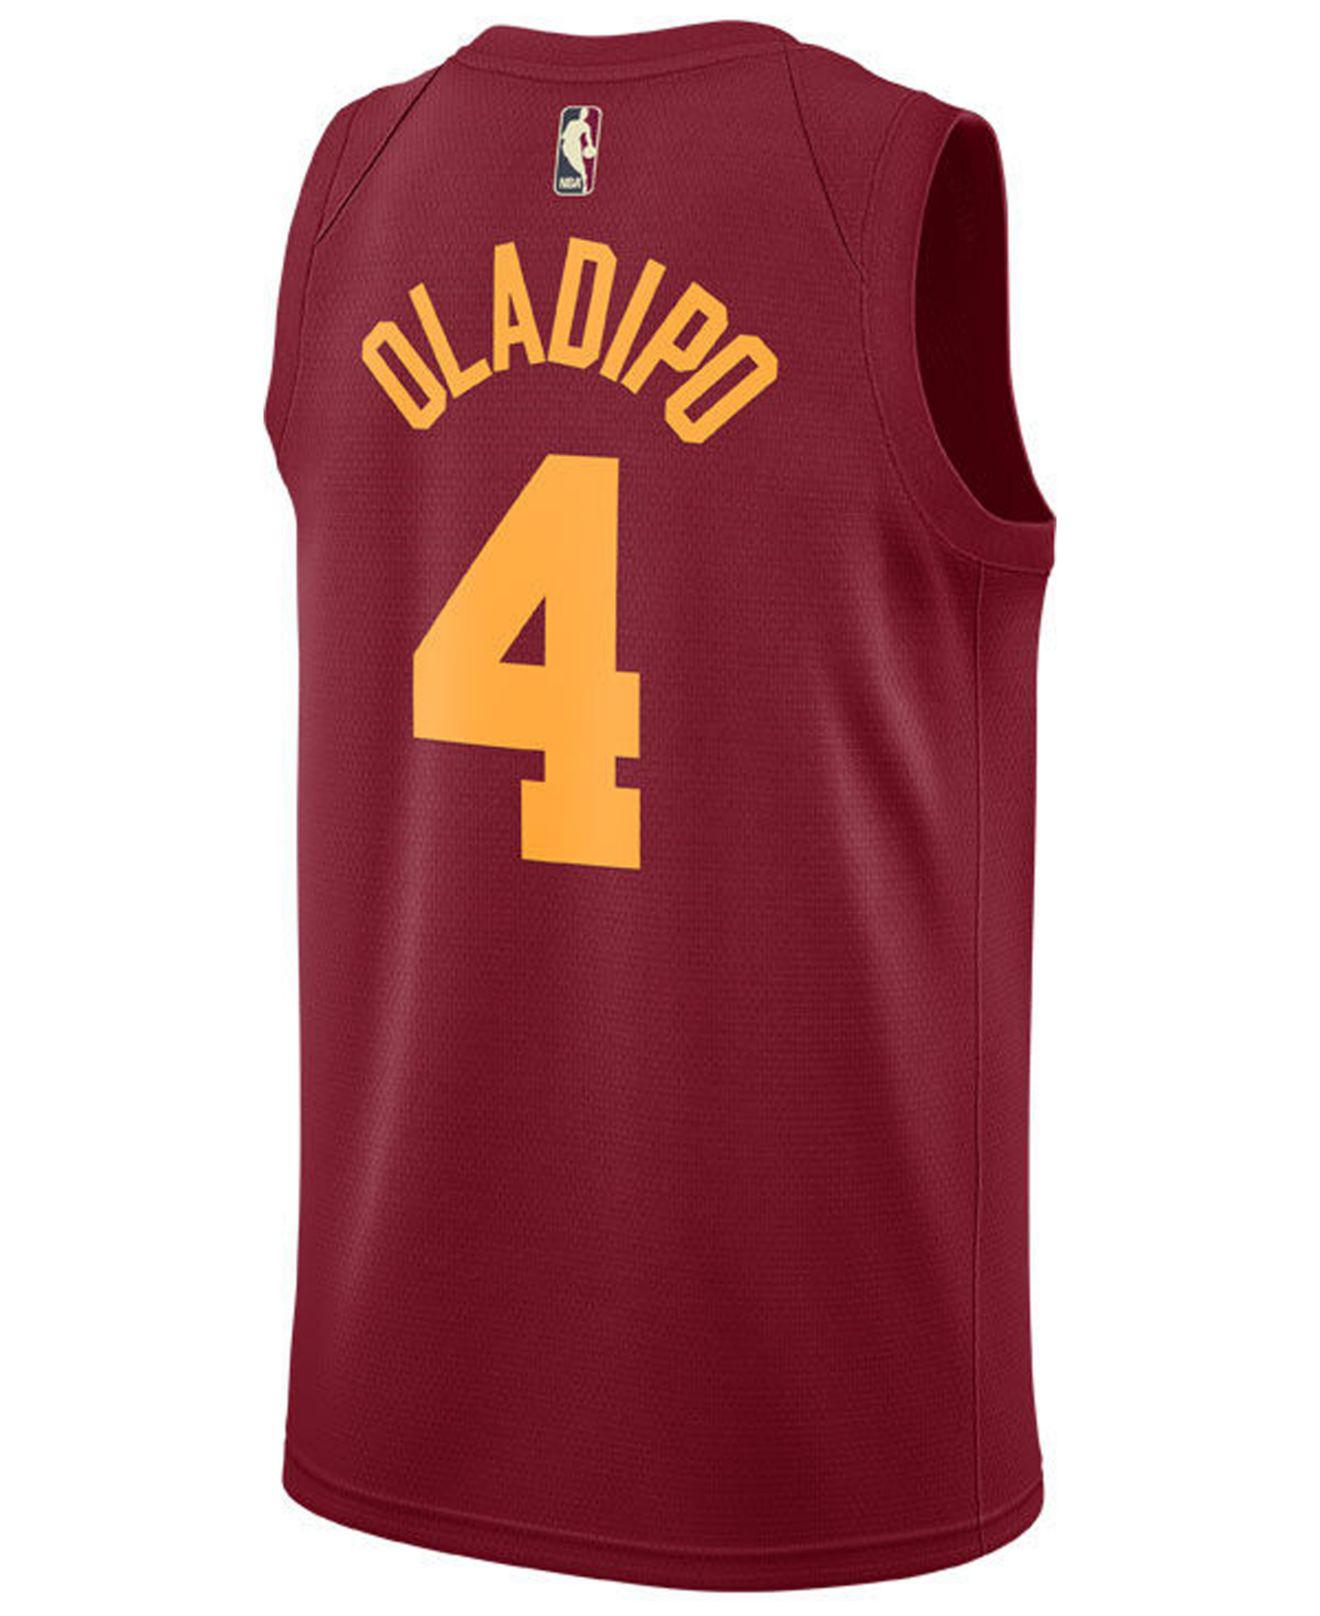 6f6aed410 ireland victor oladipo indiana pacers nike icon edition swingman jersey  9d2f3 ed868